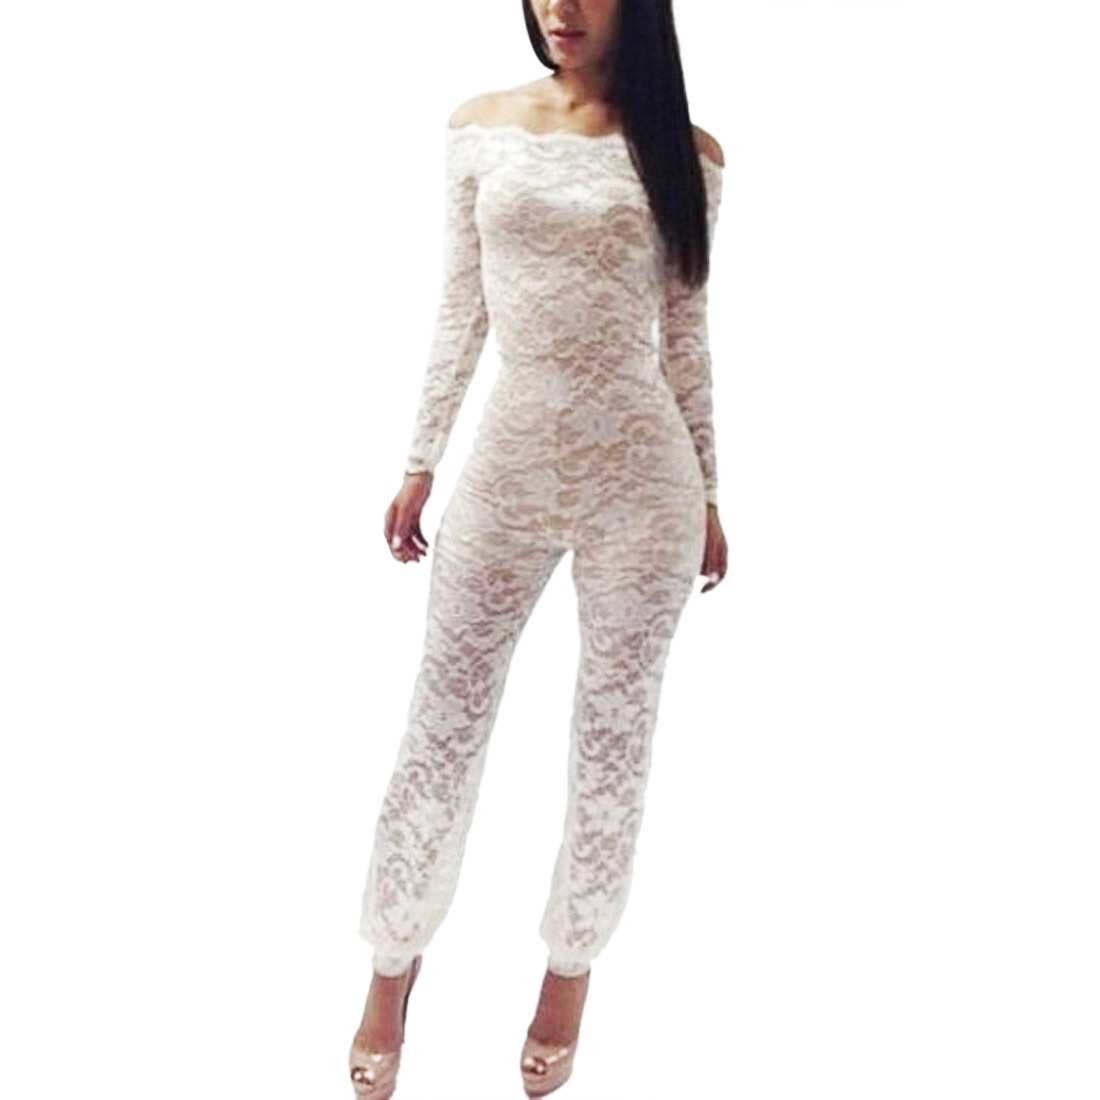 Simple Women39s White Jumpsuit Remaline Spiaggia